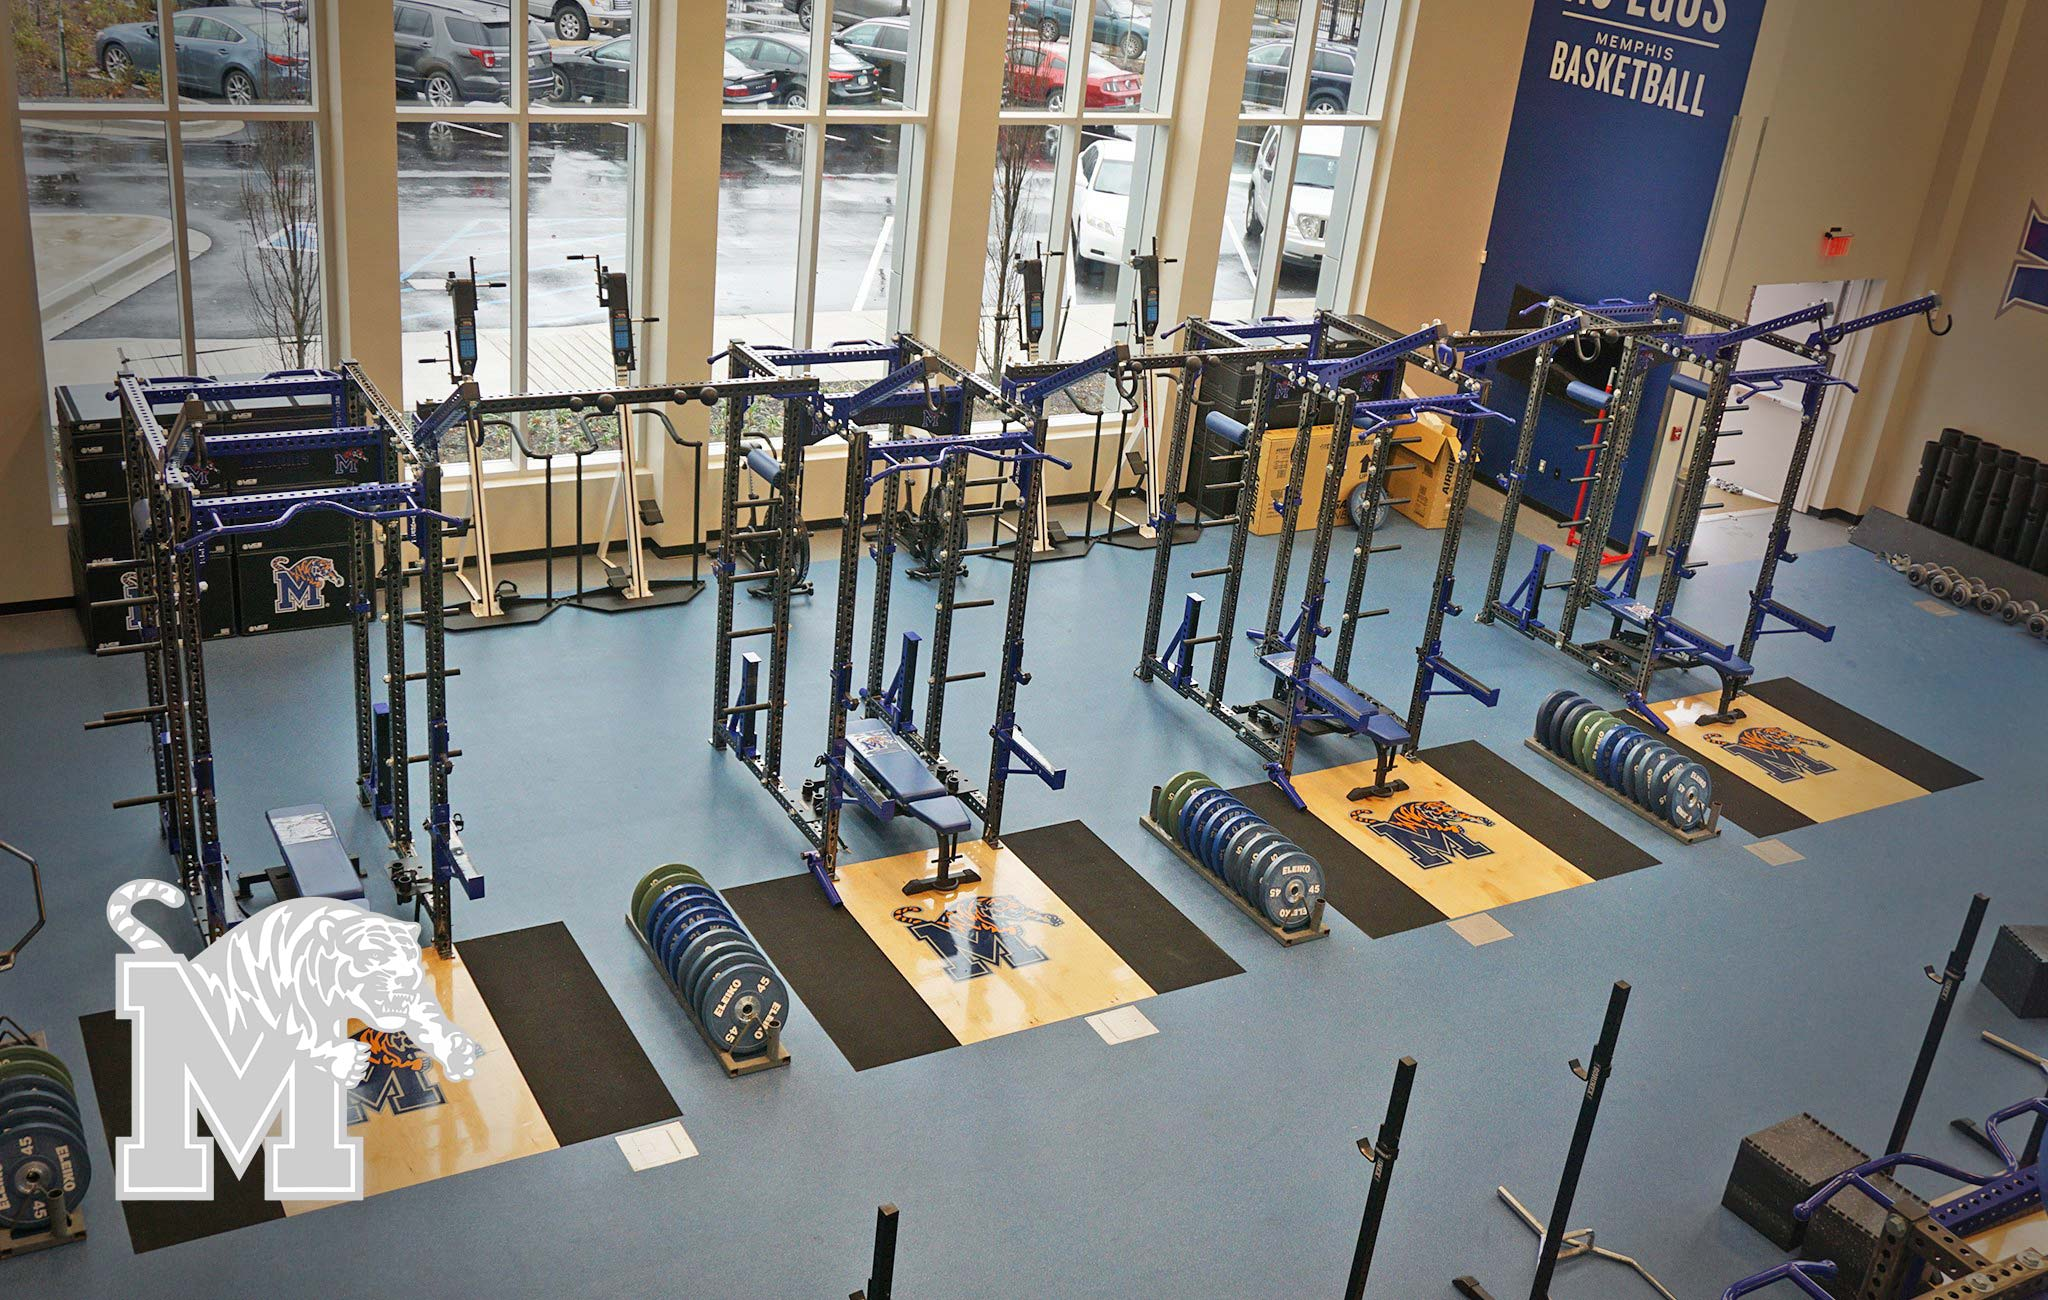 University of memphis Sorinex strength and conditioning facility